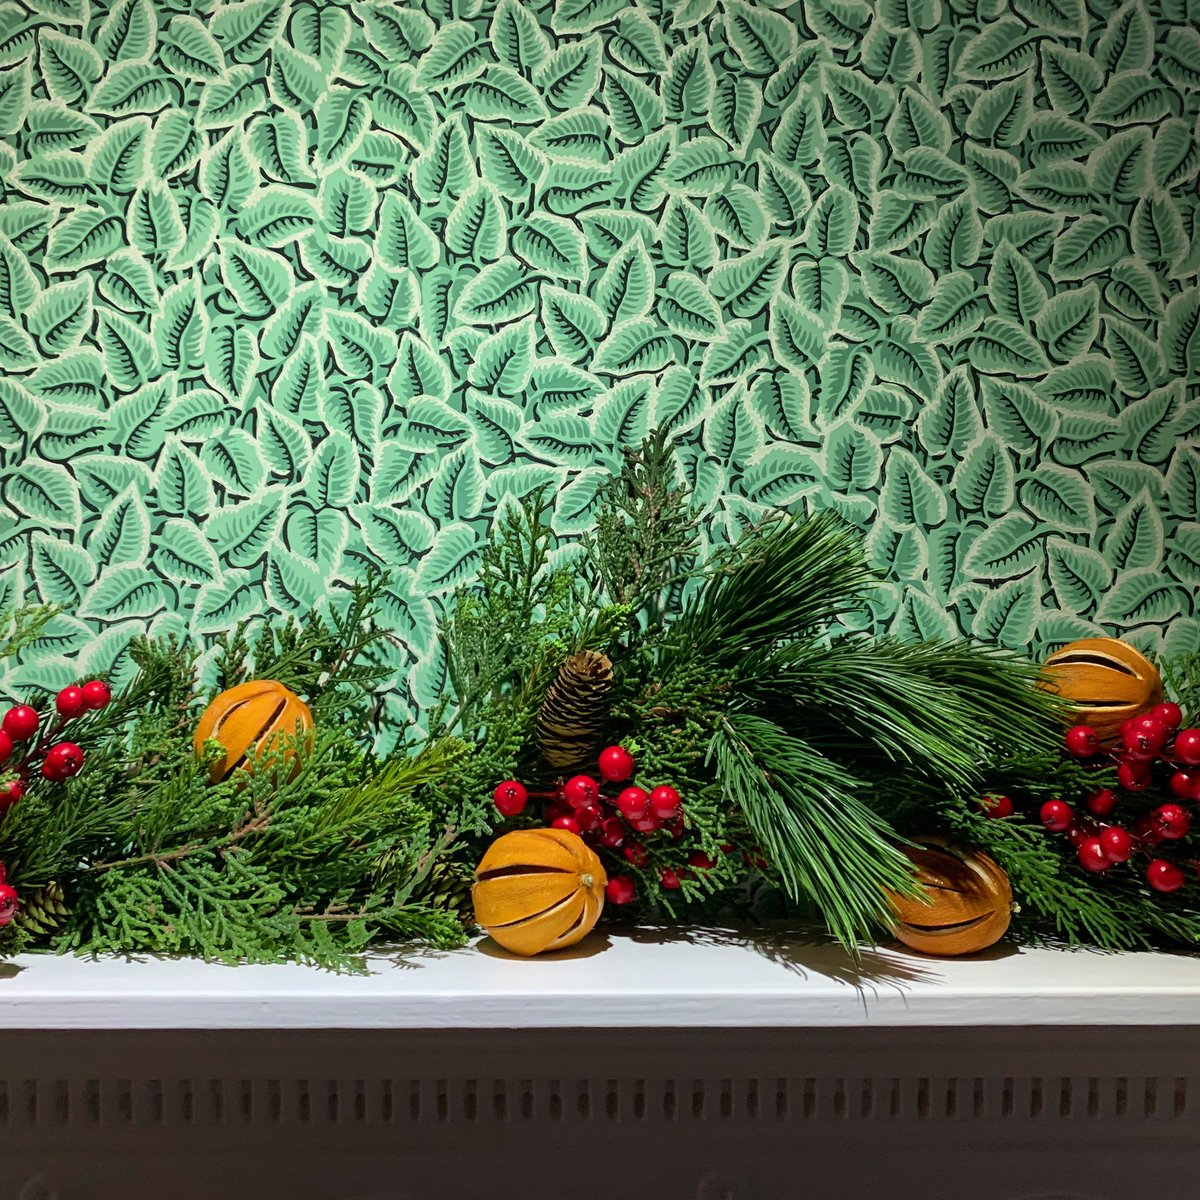 Following his visit the other week, Production Designer Grant Montgomery has written us a lovely piece on the Dining Room wallpaper (seen here with festive adornments) for the Collections pages of our website. Check it out 👉 bit.ly/2sZGuM9